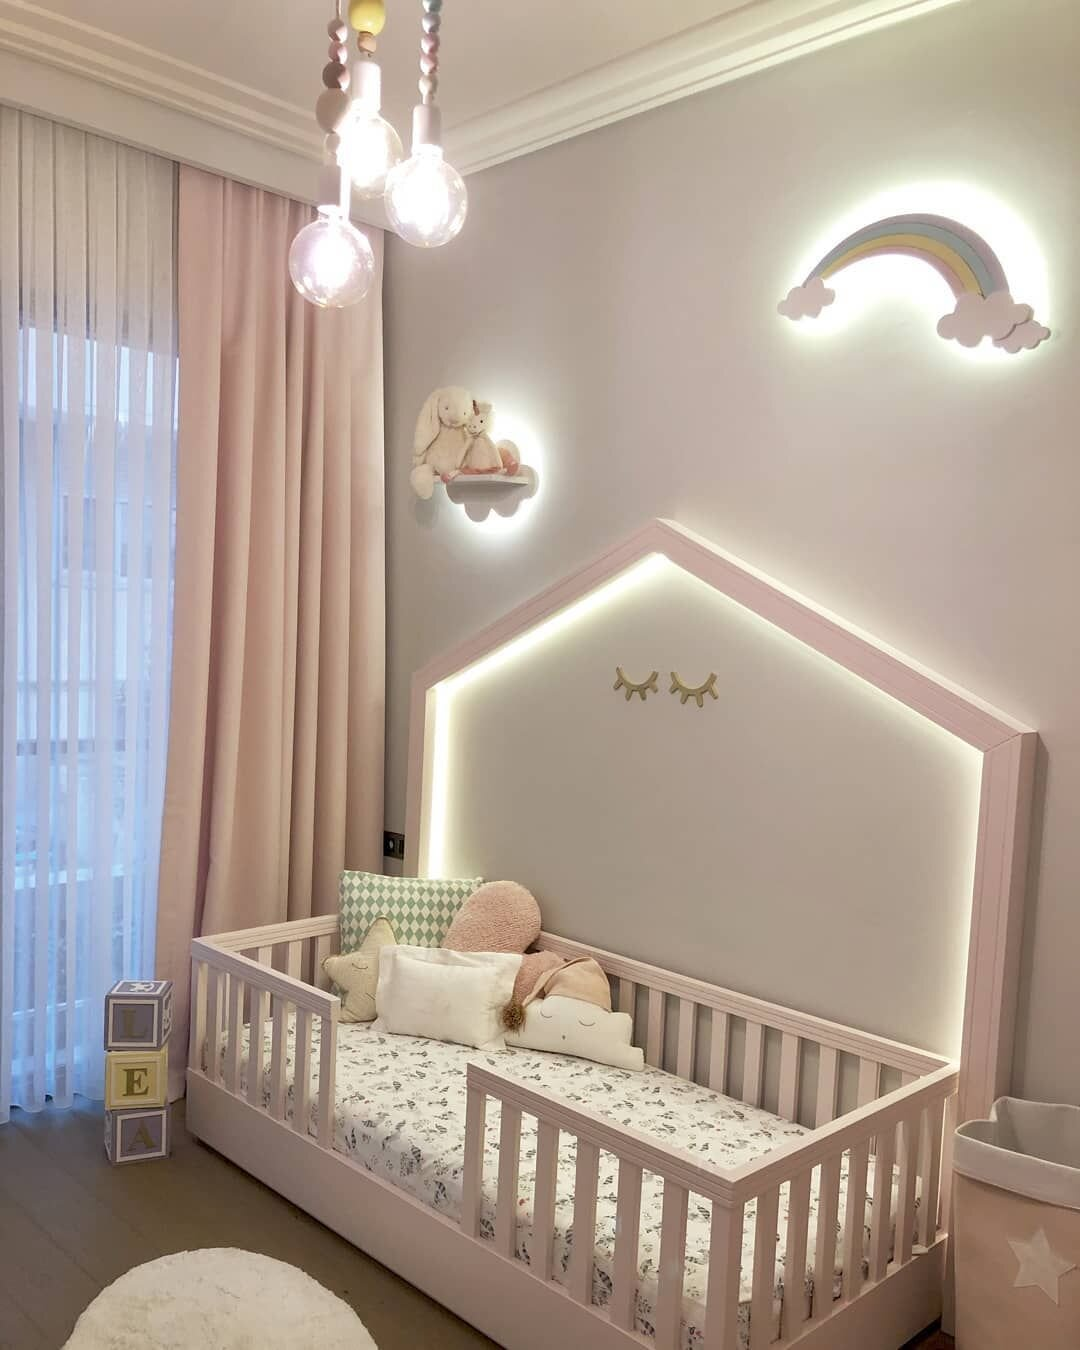 Bundle Of Joy On The Way Here Are Some Cuddly Ideas For The Perfect Nursery Room Hipcouch Complete Interiors Furniture